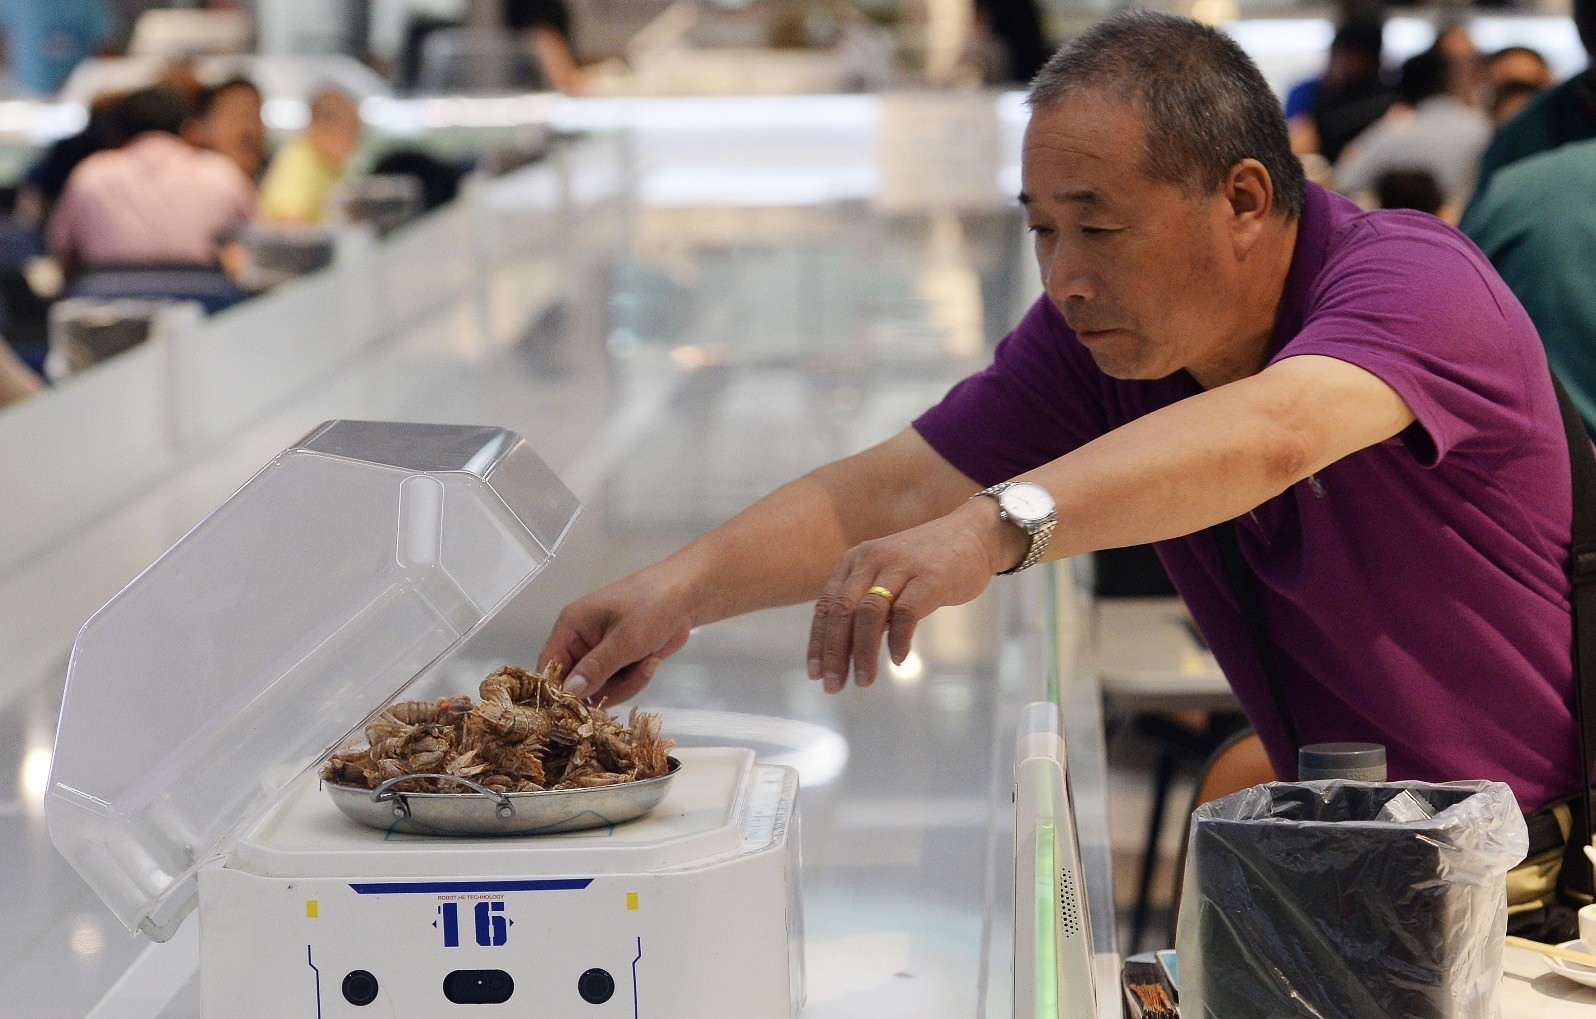 A man gets food from a robot at the ROBOT.HE restaurant in Shanghai.